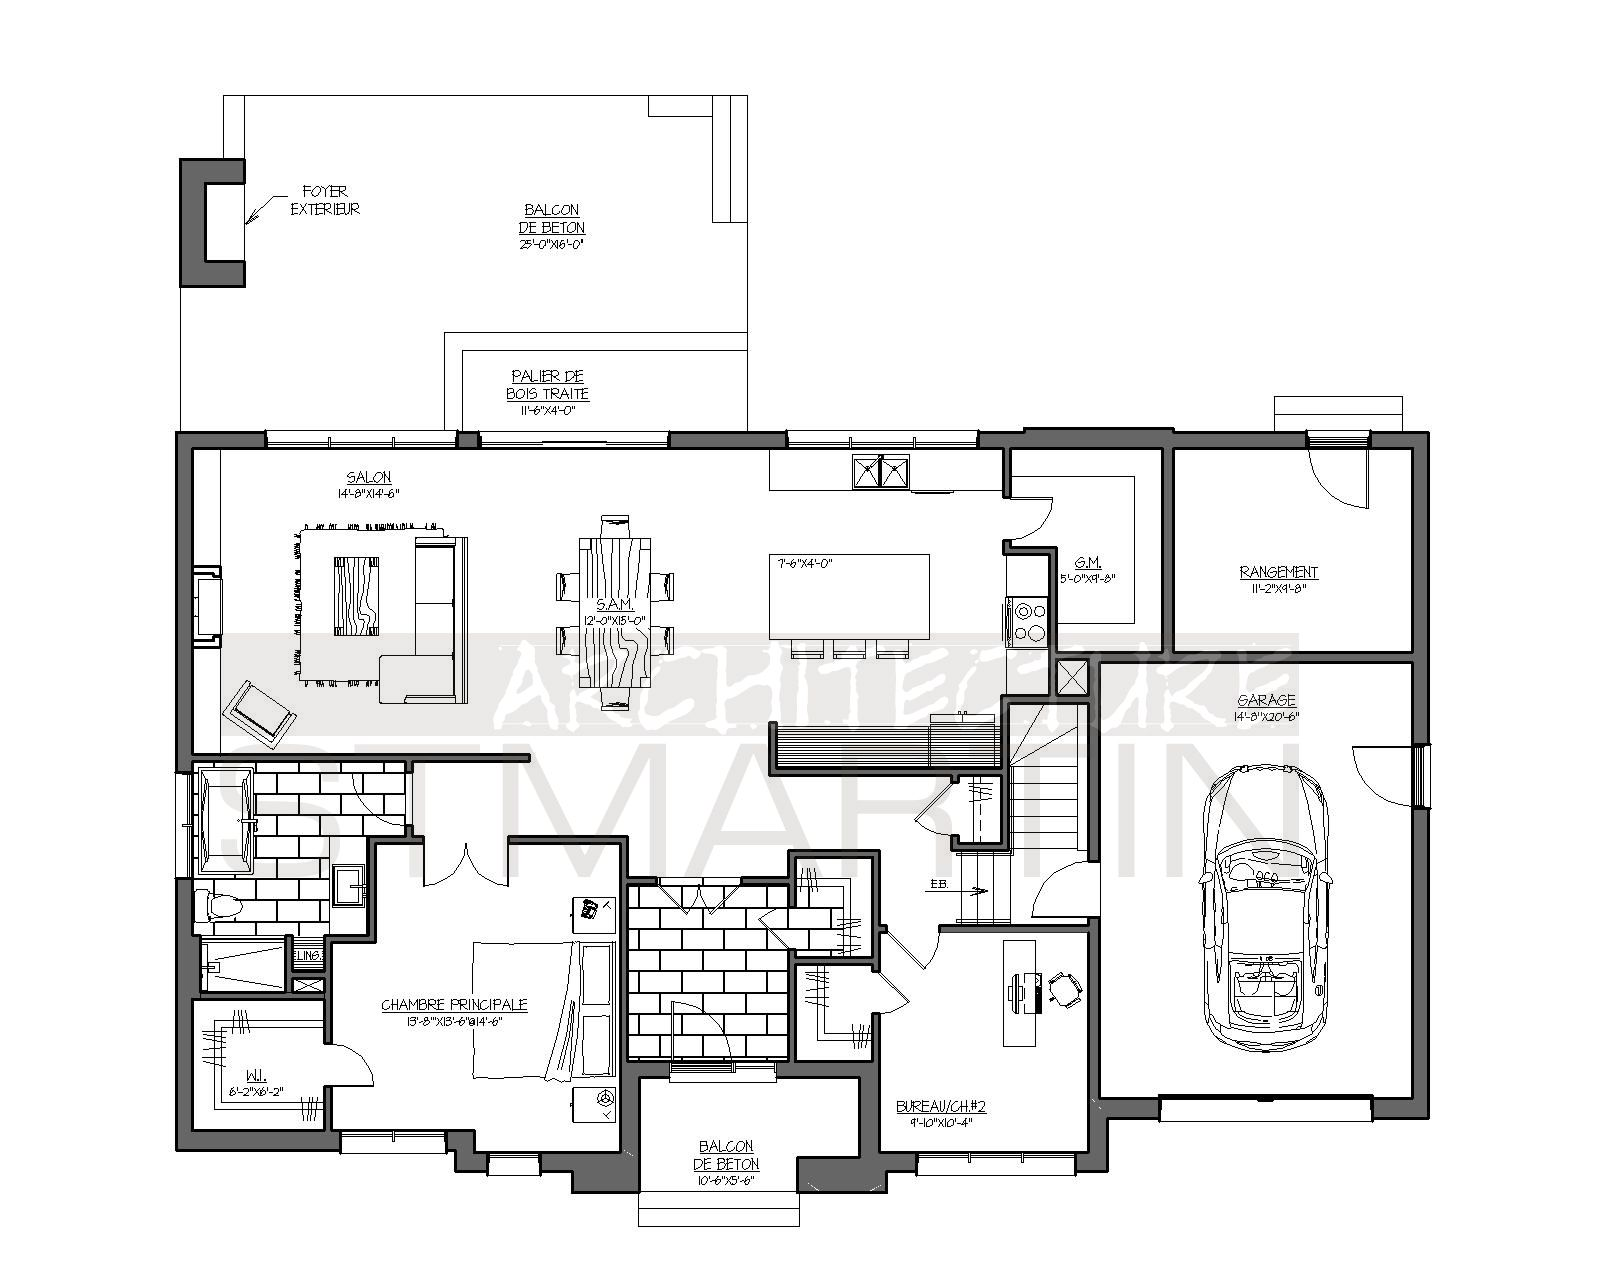 Architecture St Martin 14 2651 Floor Plan Design Small House Plans House Plans